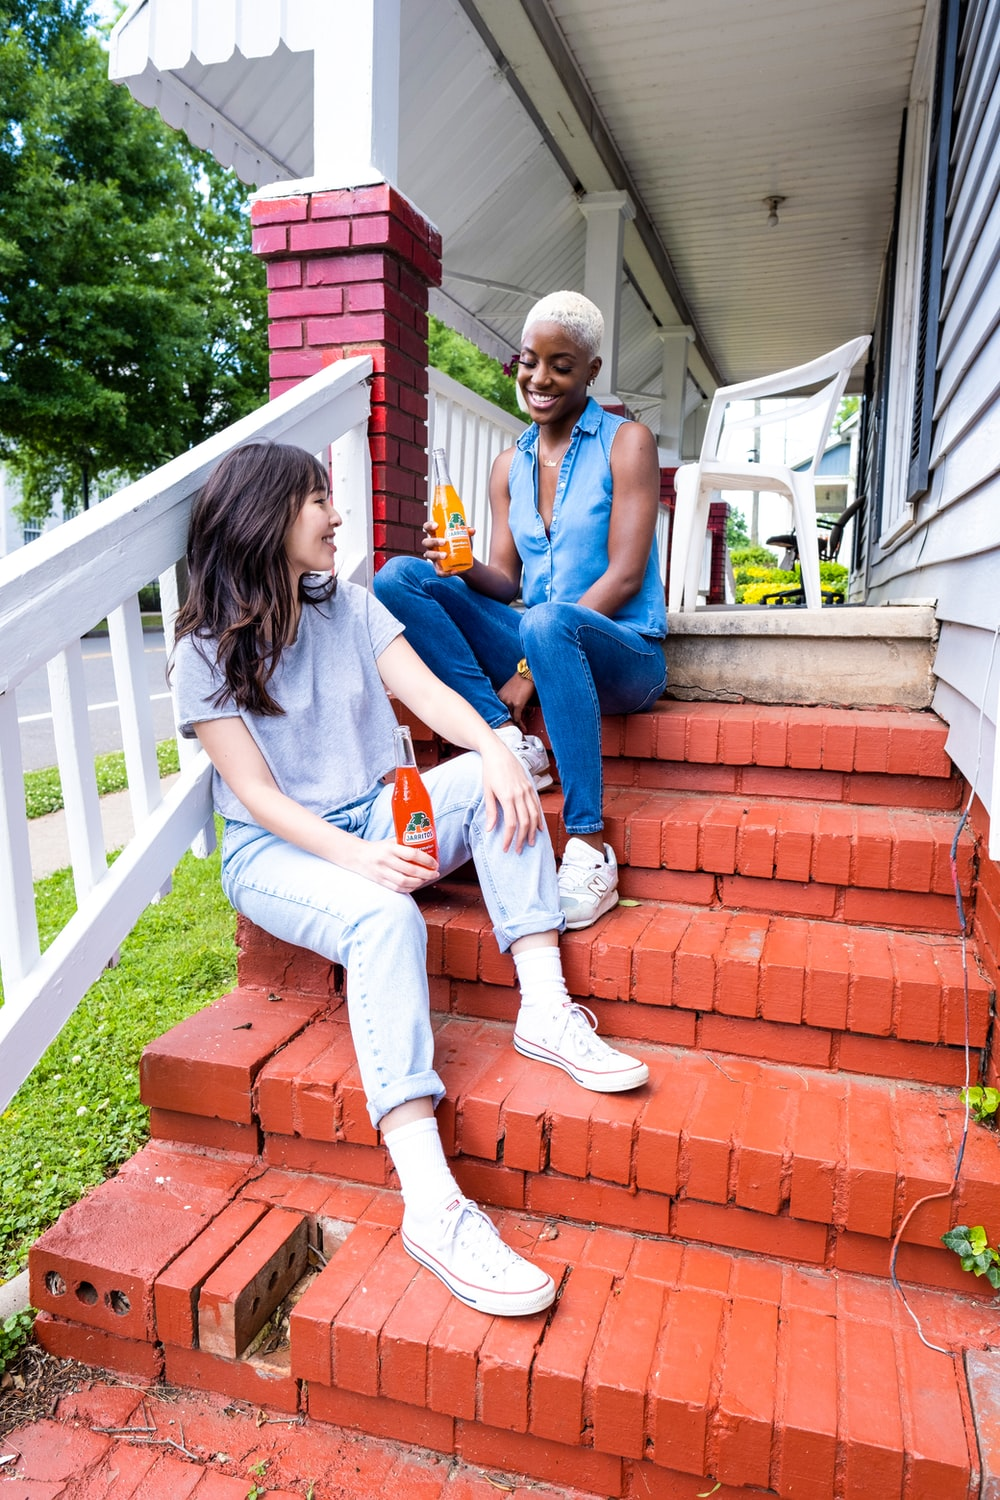 man and woman sitting on red concrete stairs